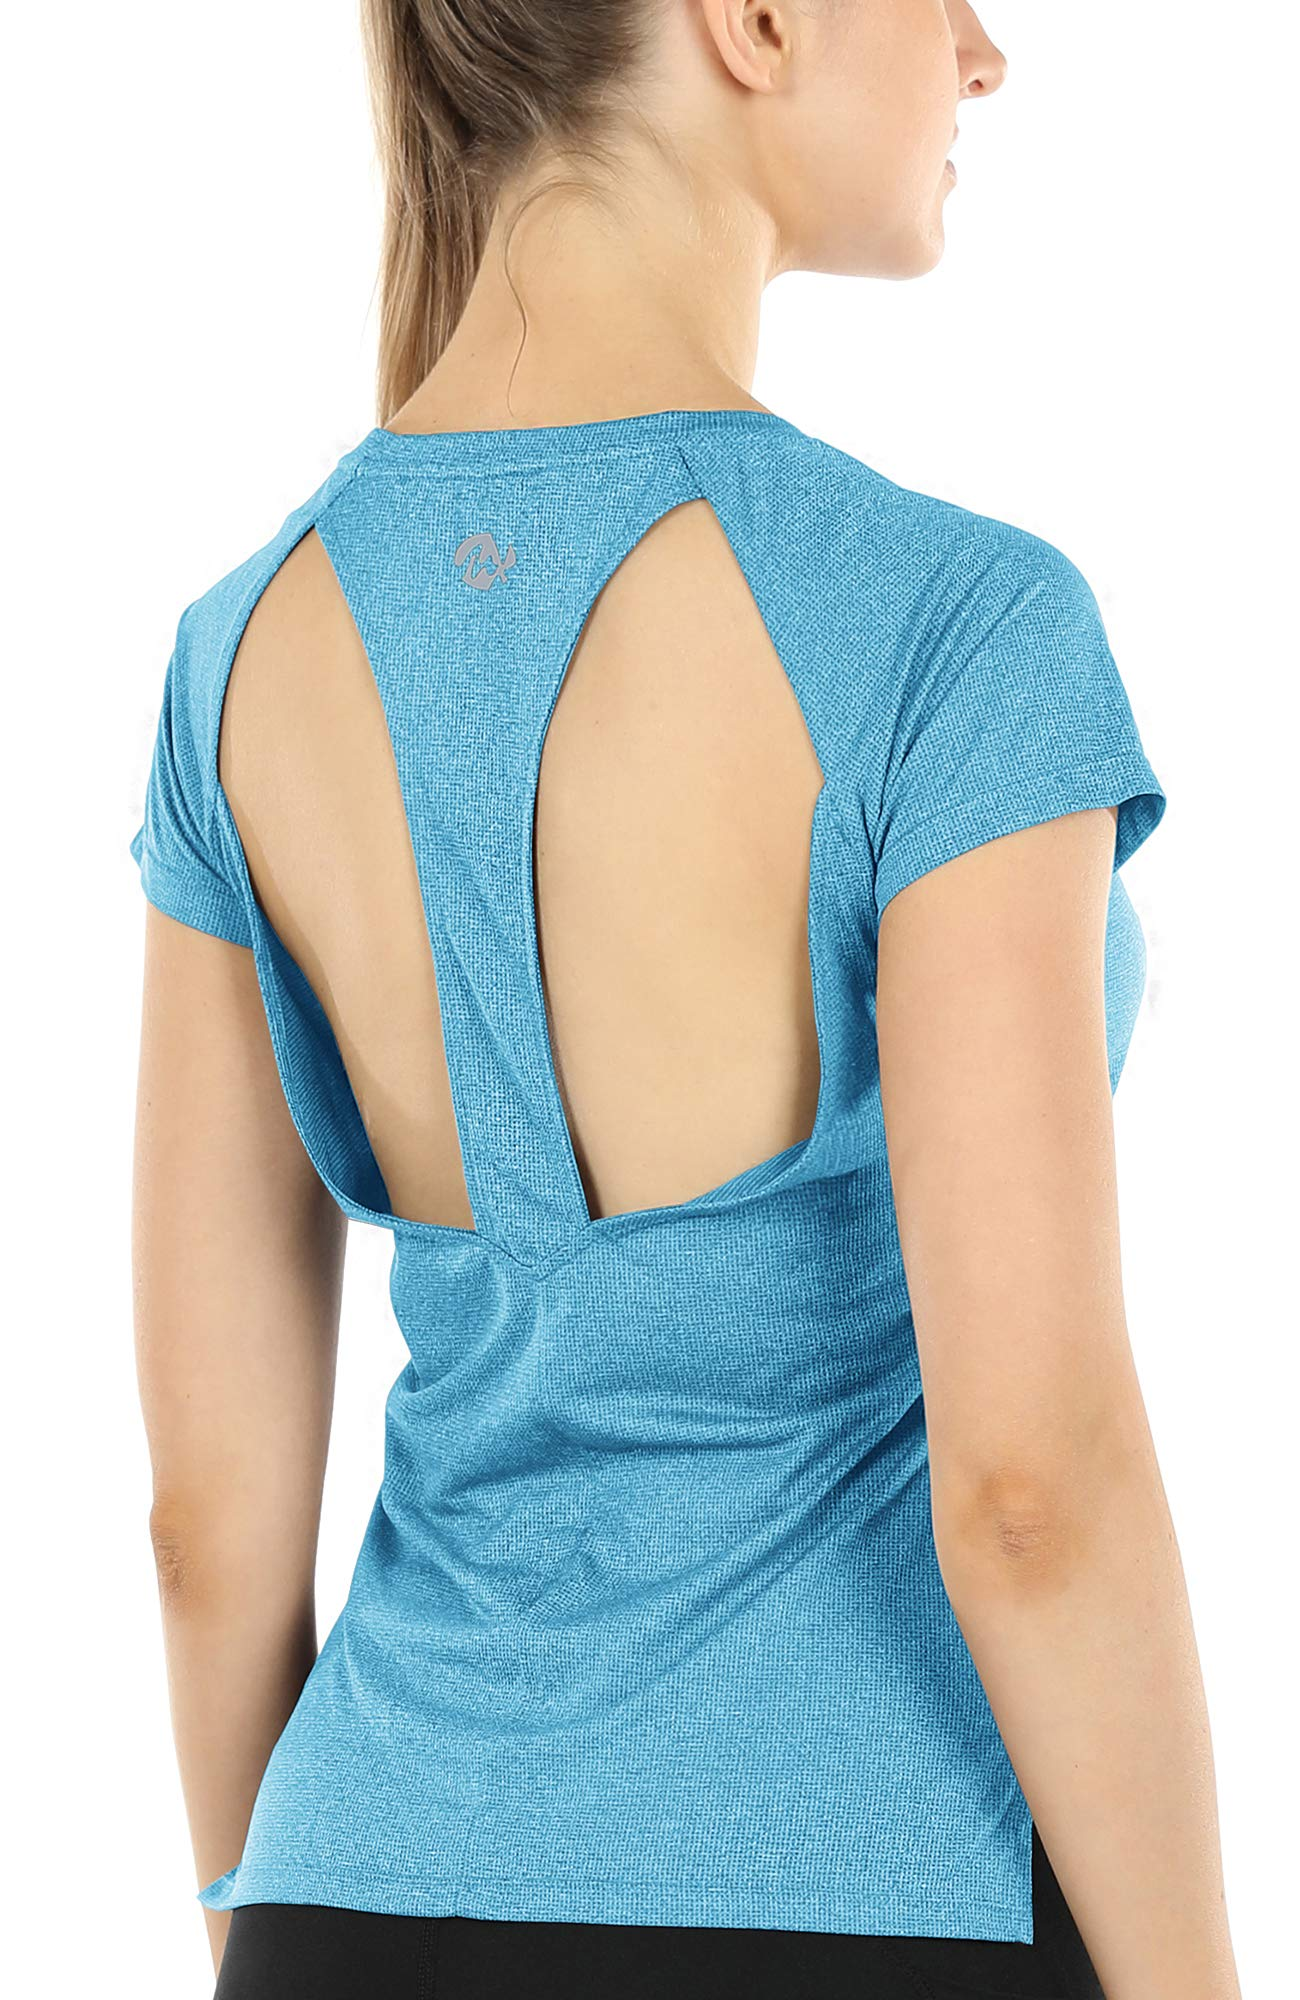 Melpoint Workout Yoga Shirts for Women - Open Back Athletic Tops Gym Running Exercise Tshirts Loose Fit (Blue, L)